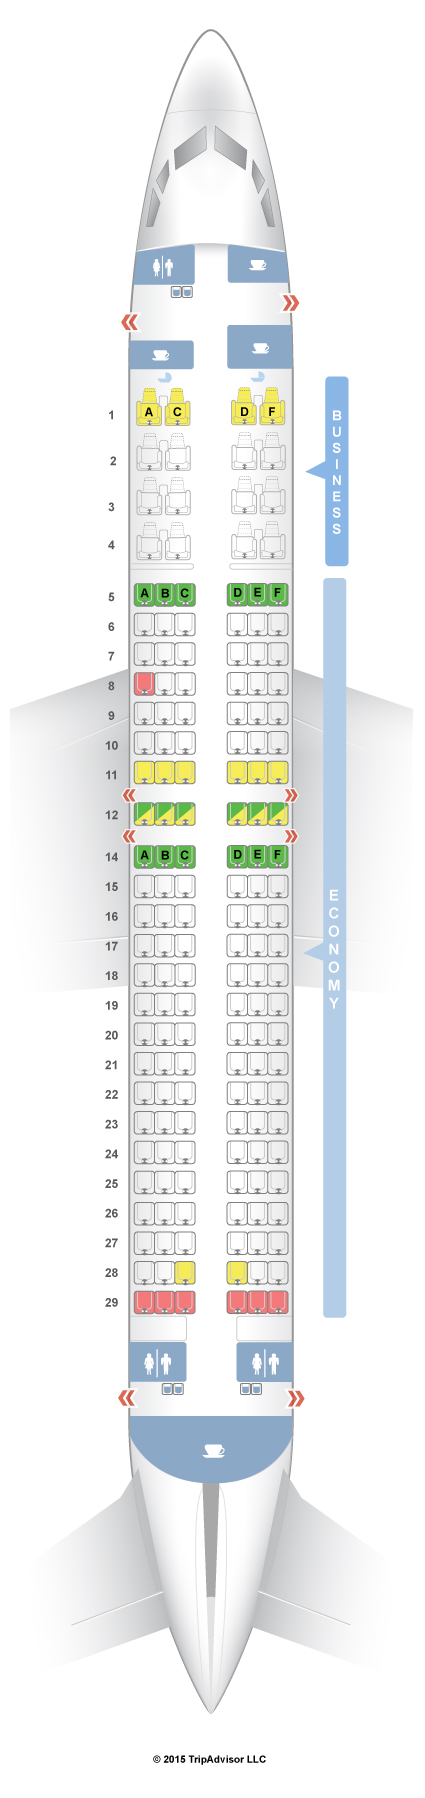 737-800 Seat Map SeatGuru Seat Map Malaysia Airlines Boeing 737 800 (738) V2 737-800 Seat Map